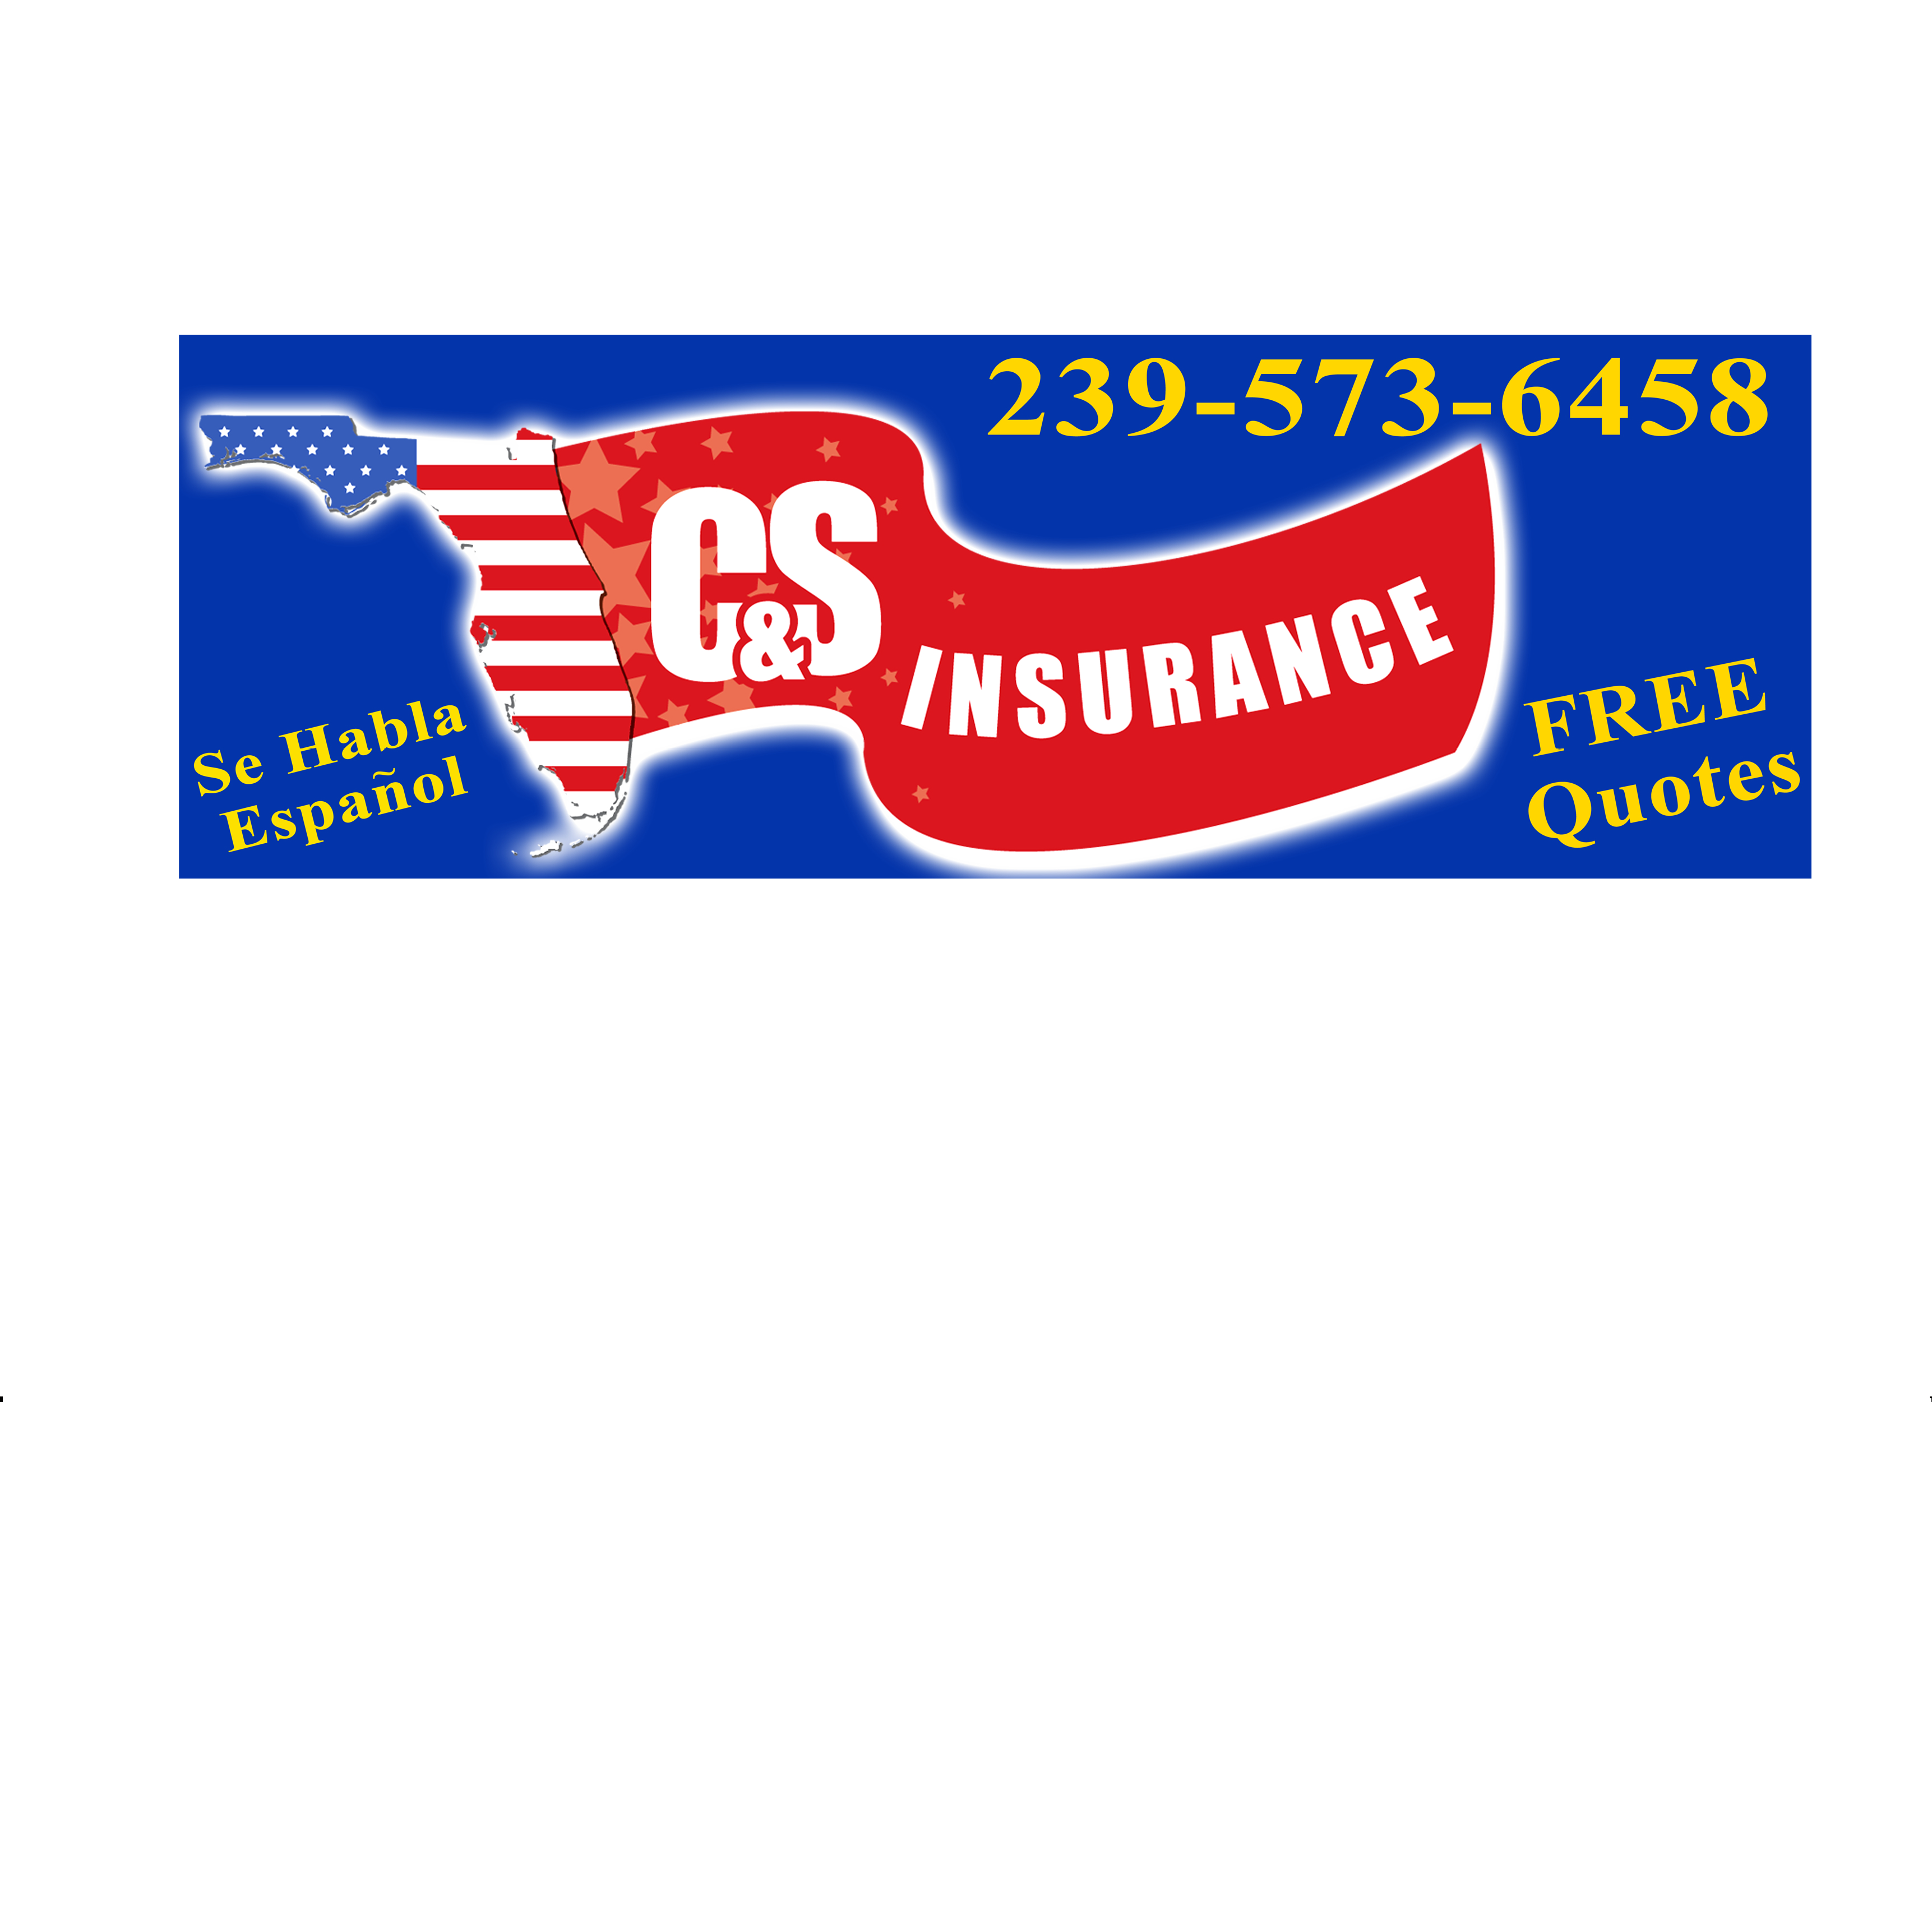 Insurance Carriers Business Directory Cape Coral